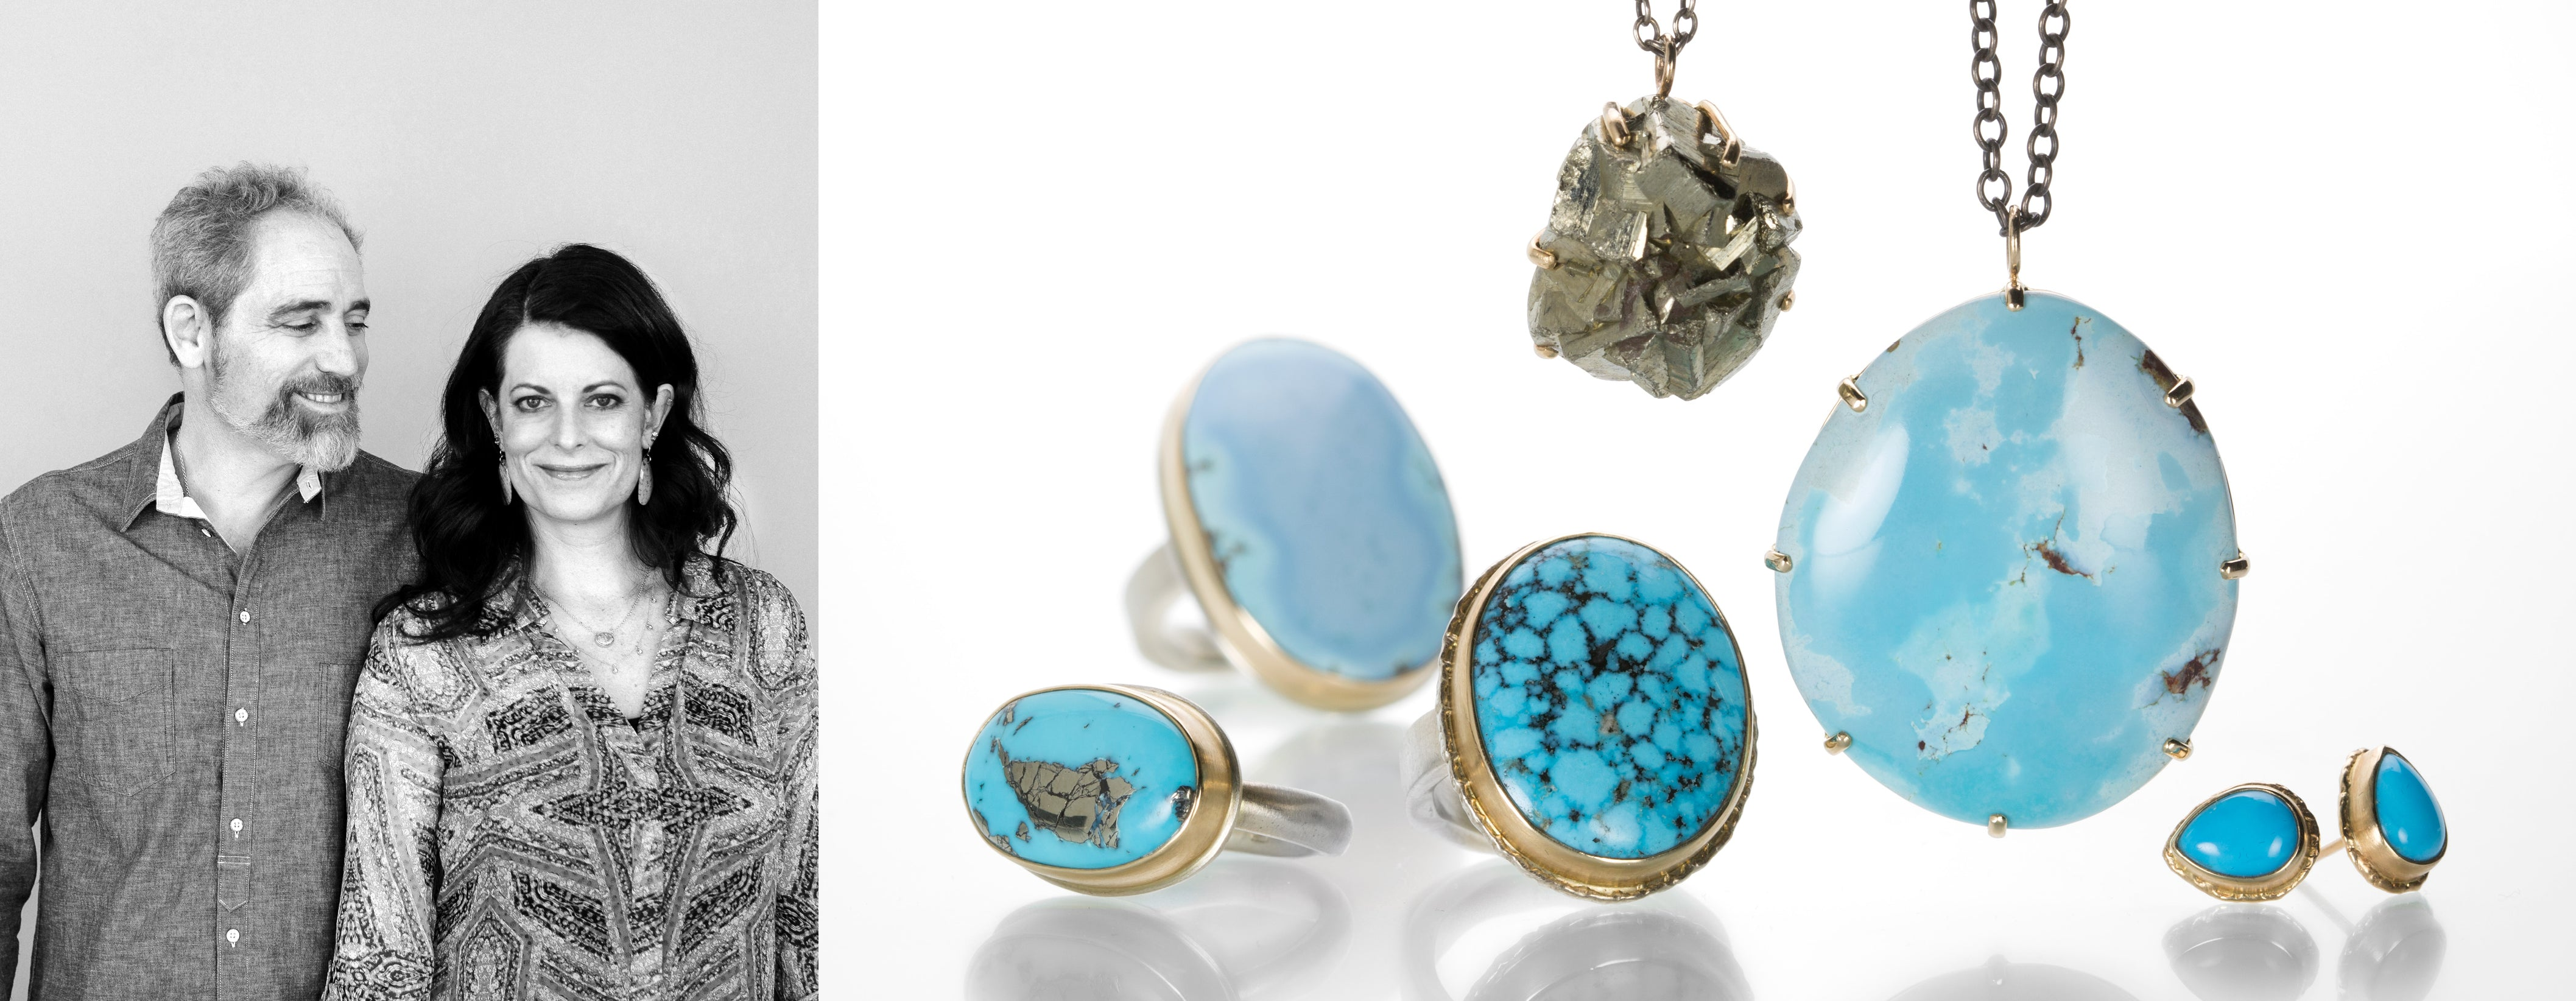 Jewelry designers Jamie Joseph and Jeremy Joseph alongside their jewelry collection featuring a pyrite necklace, a turquoise necklace, three turquoise rings and a pair of turquoise studs, all crafted in 14k yellow gold and sterling silver.